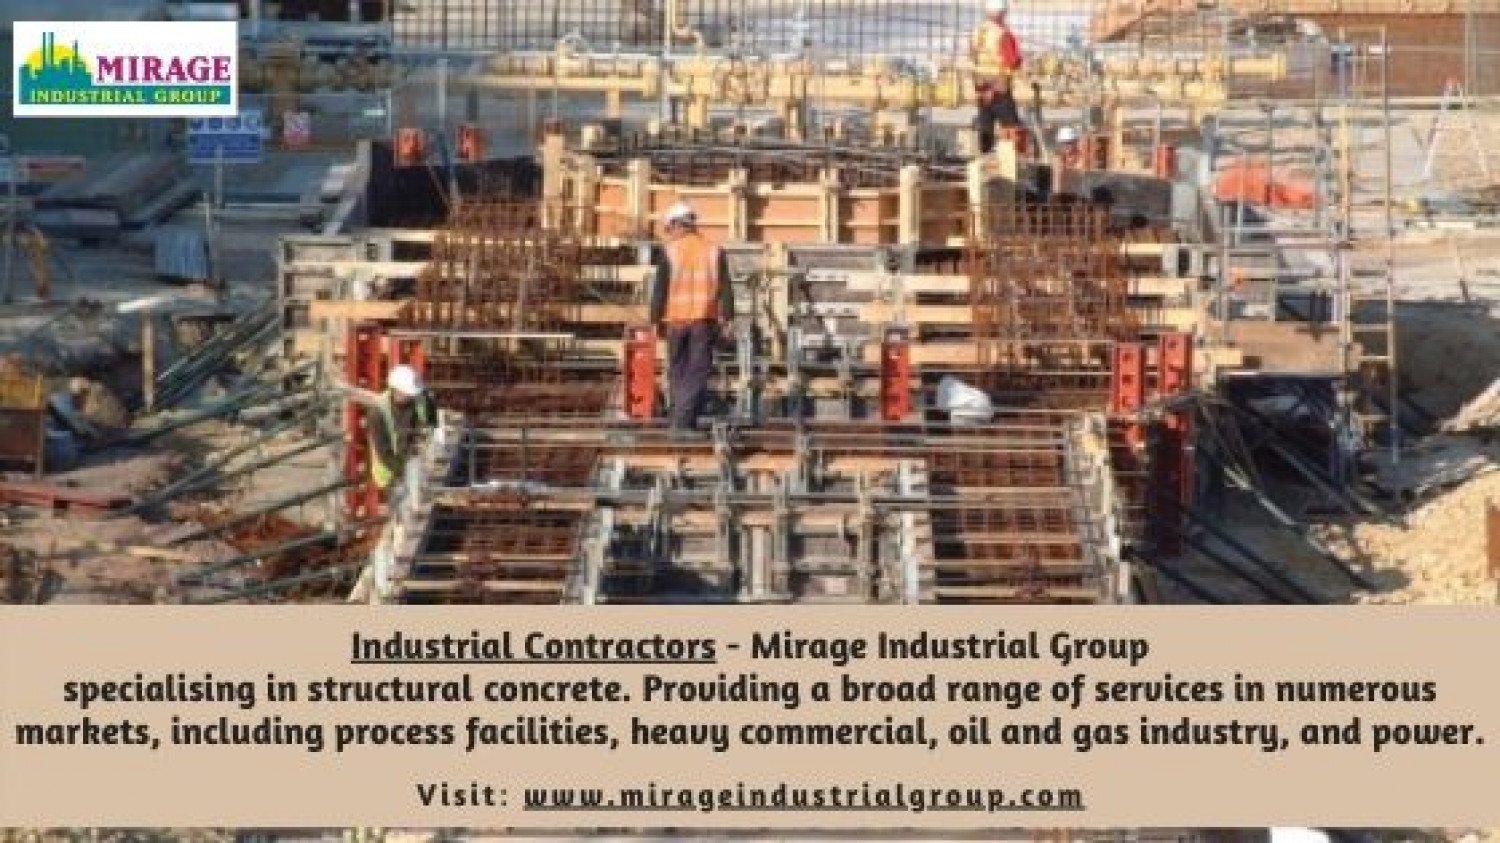 Industrial Contractors in Corpus Christi, Texas - Mirage Industrial Group Infographic